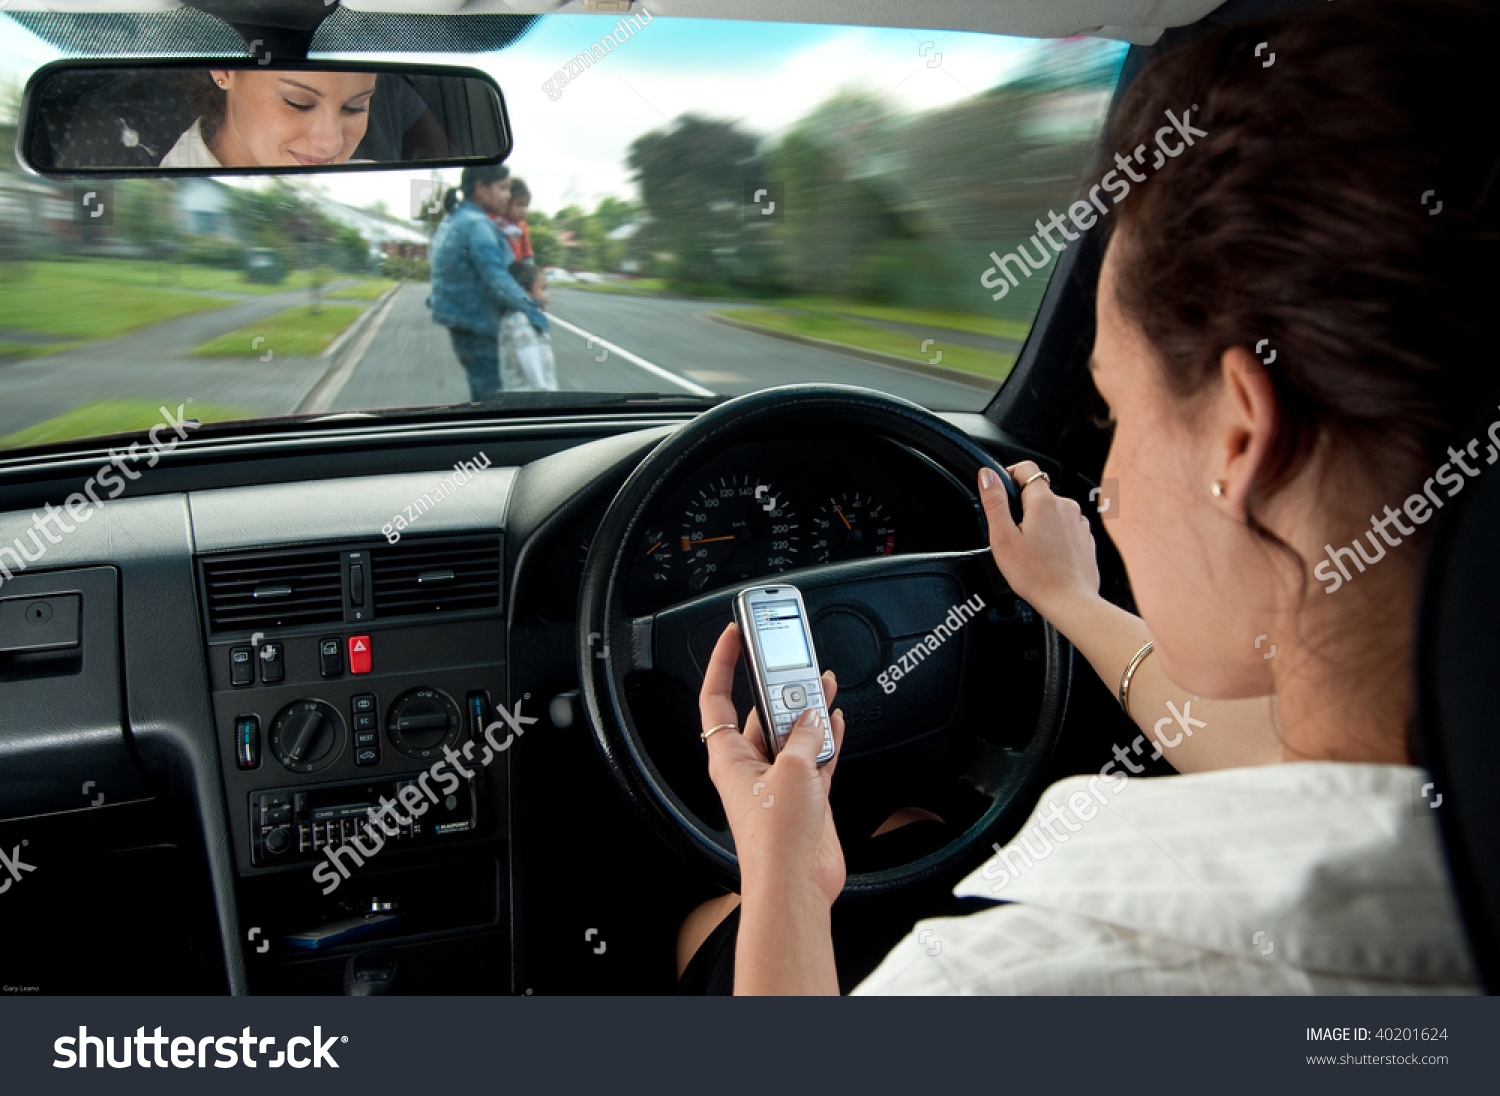 dangers texting while driving stock photo 40201624 shutterstock. Black Bedroom Furniture Sets. Home Design Ideas